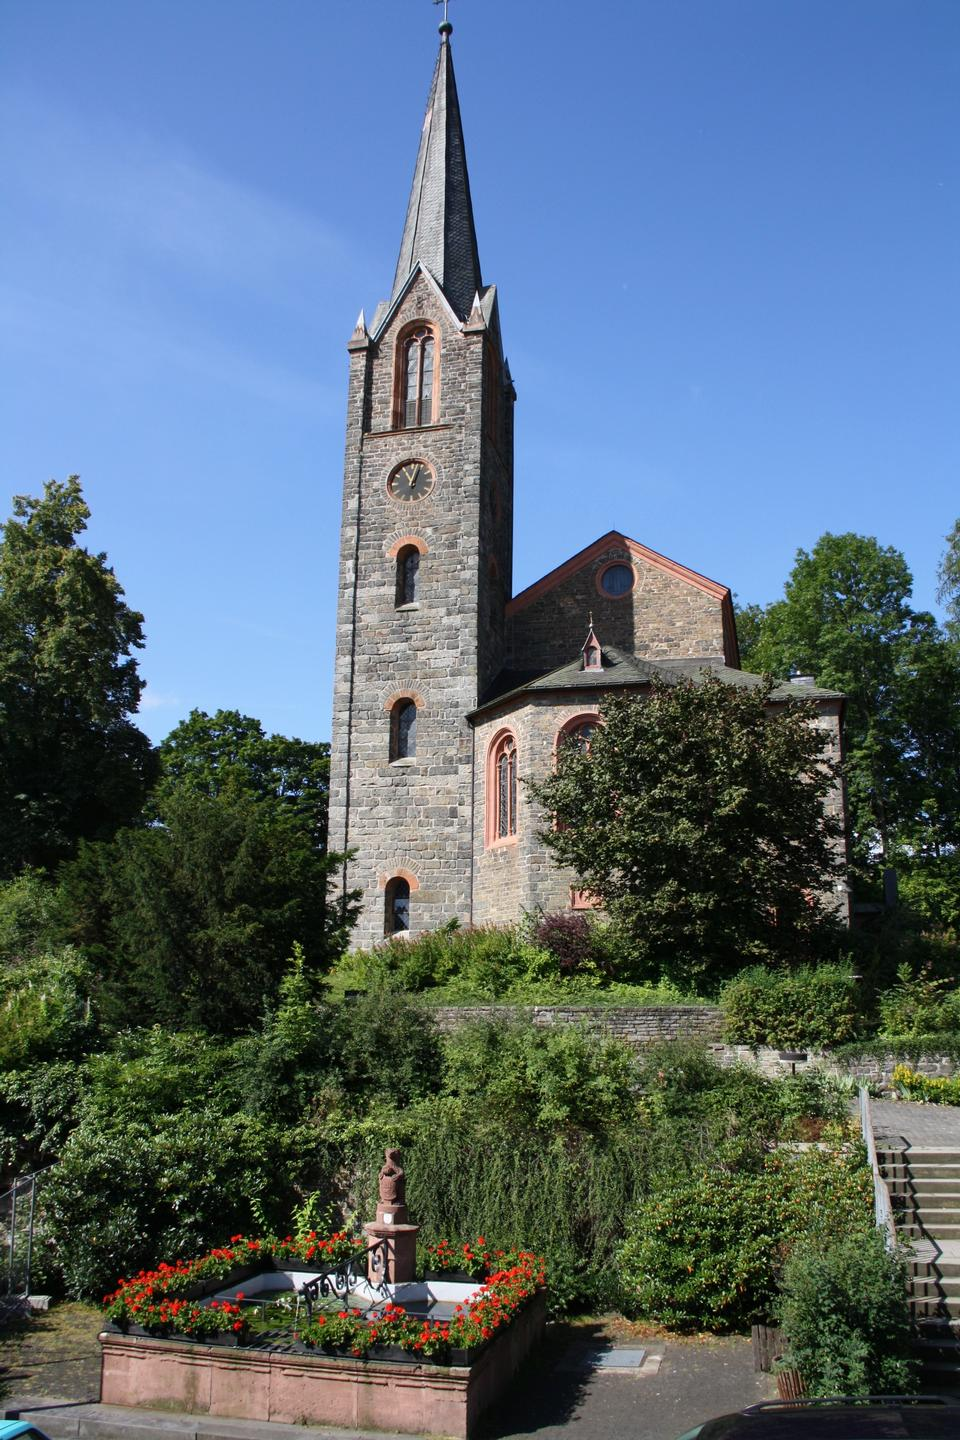 Free Cultural heritage monument in Bad Berleburg